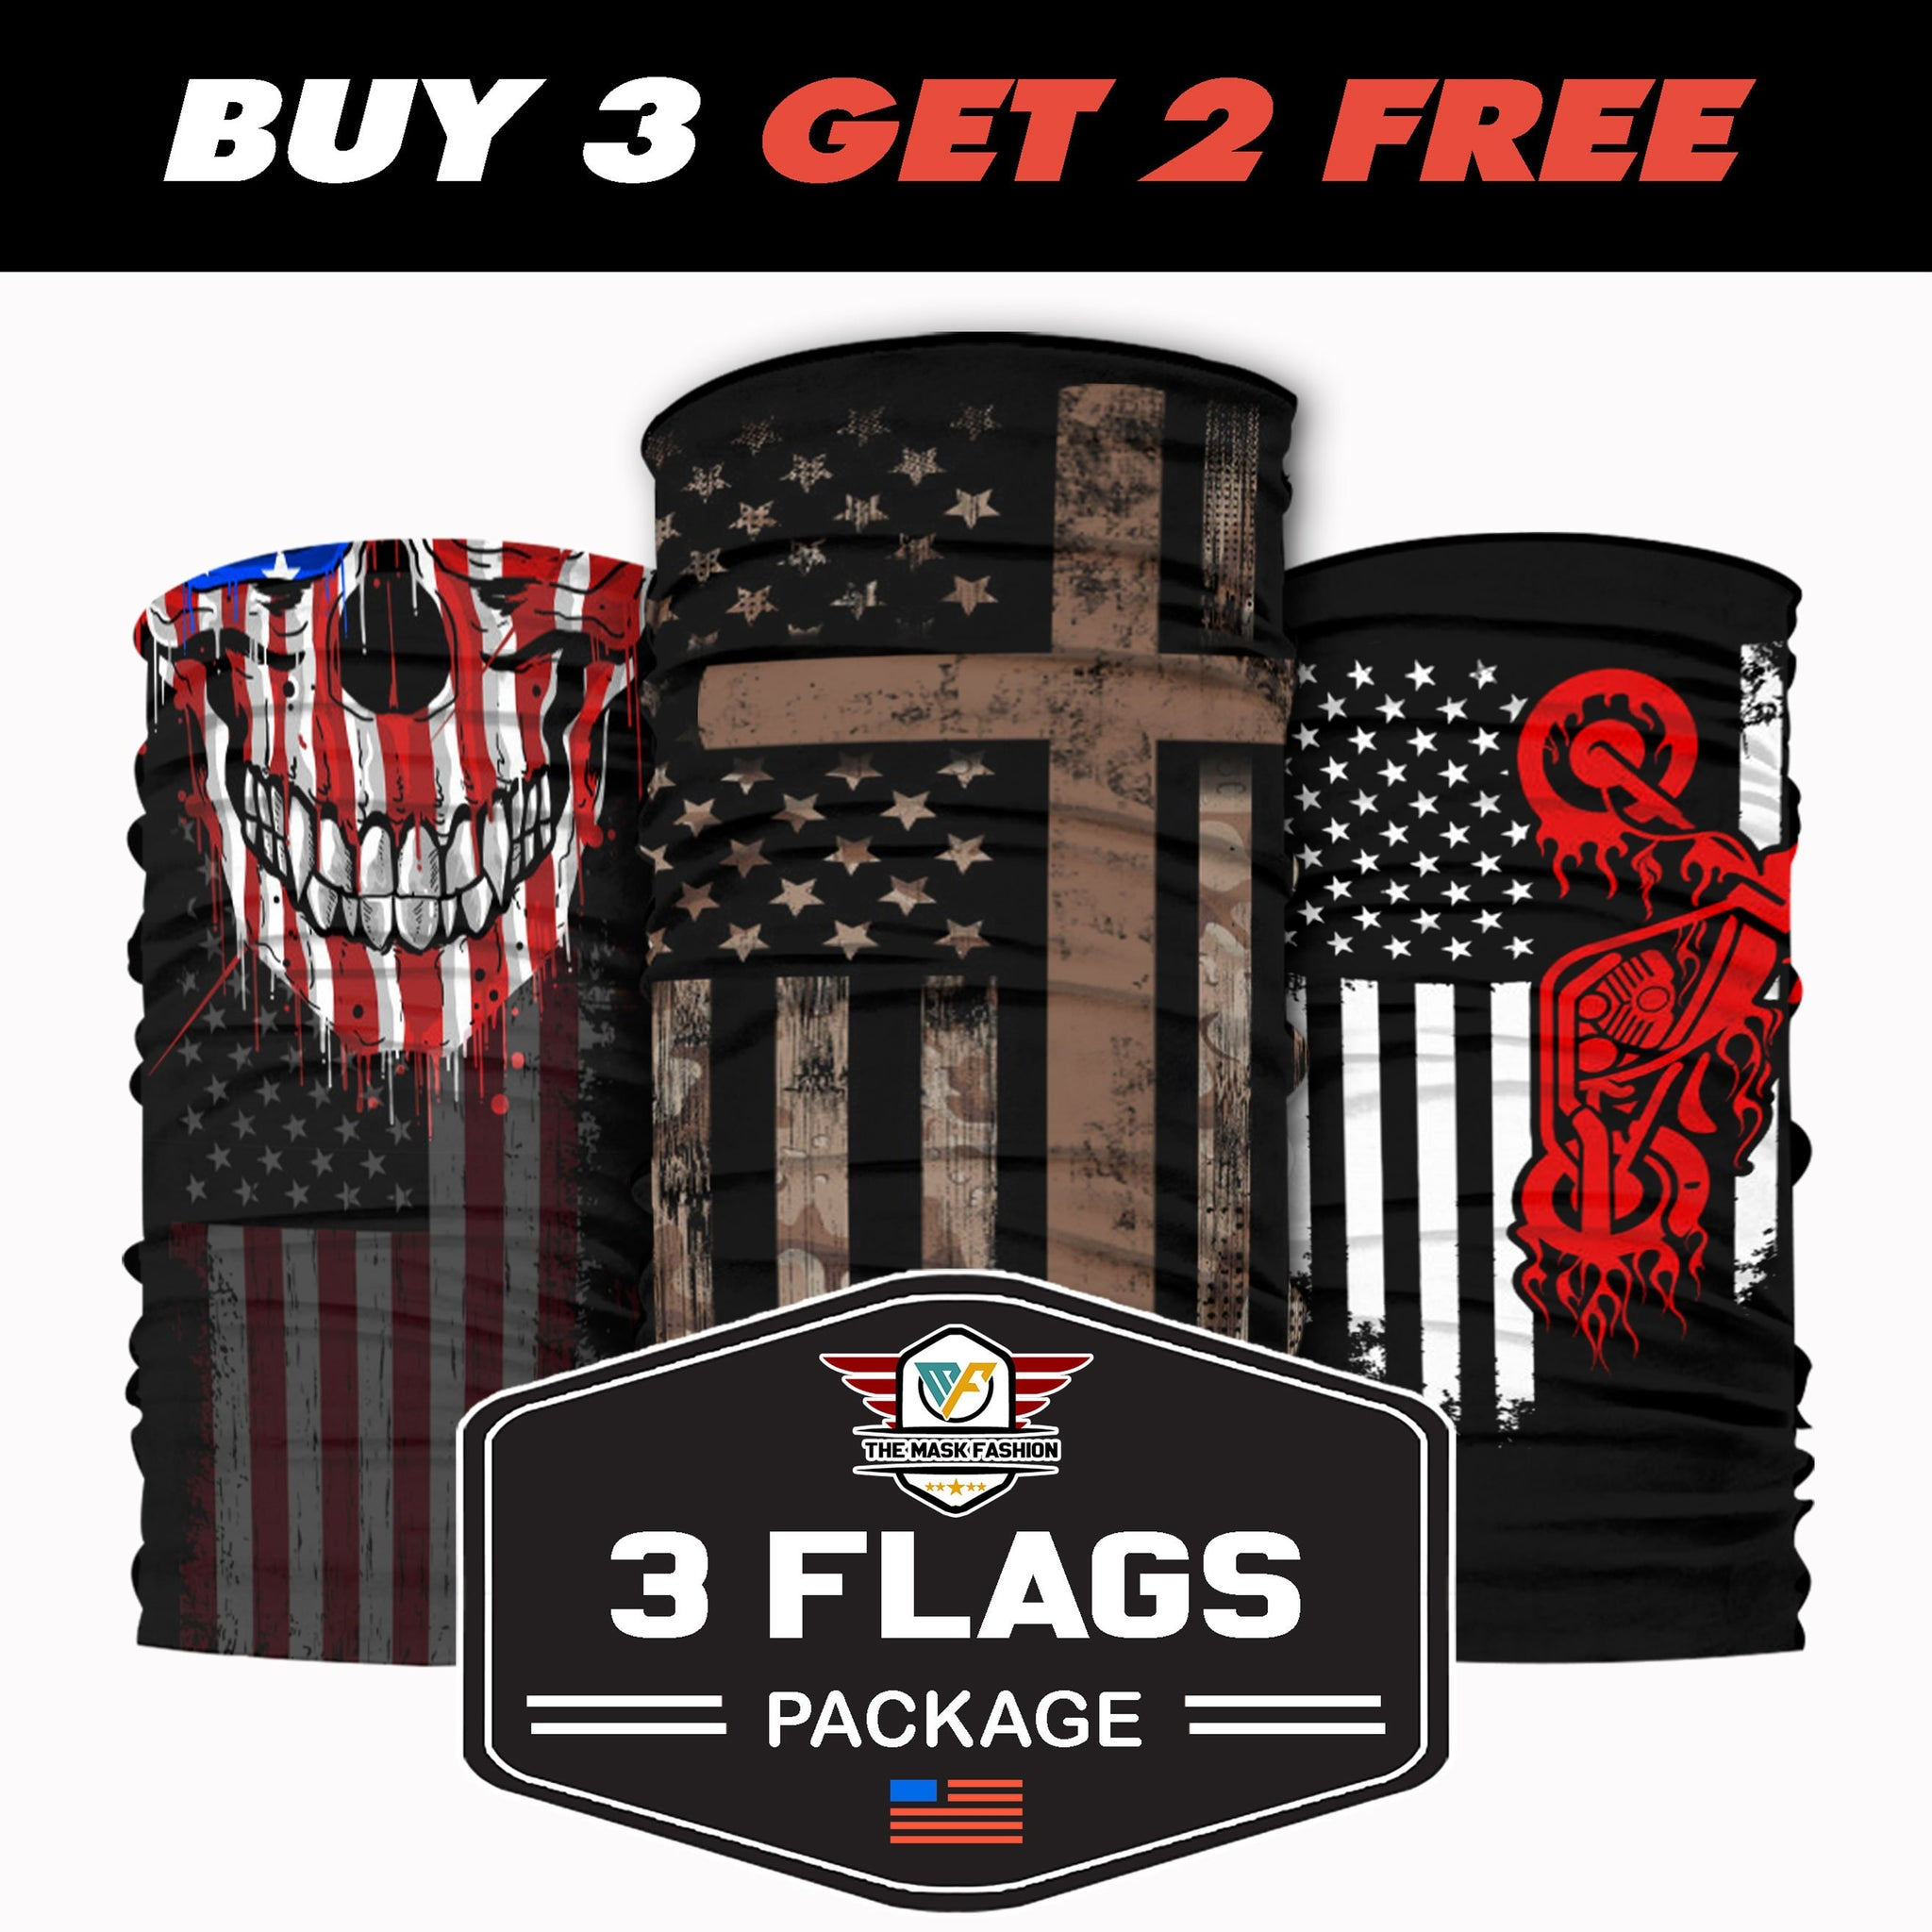 3-Flags Package 15